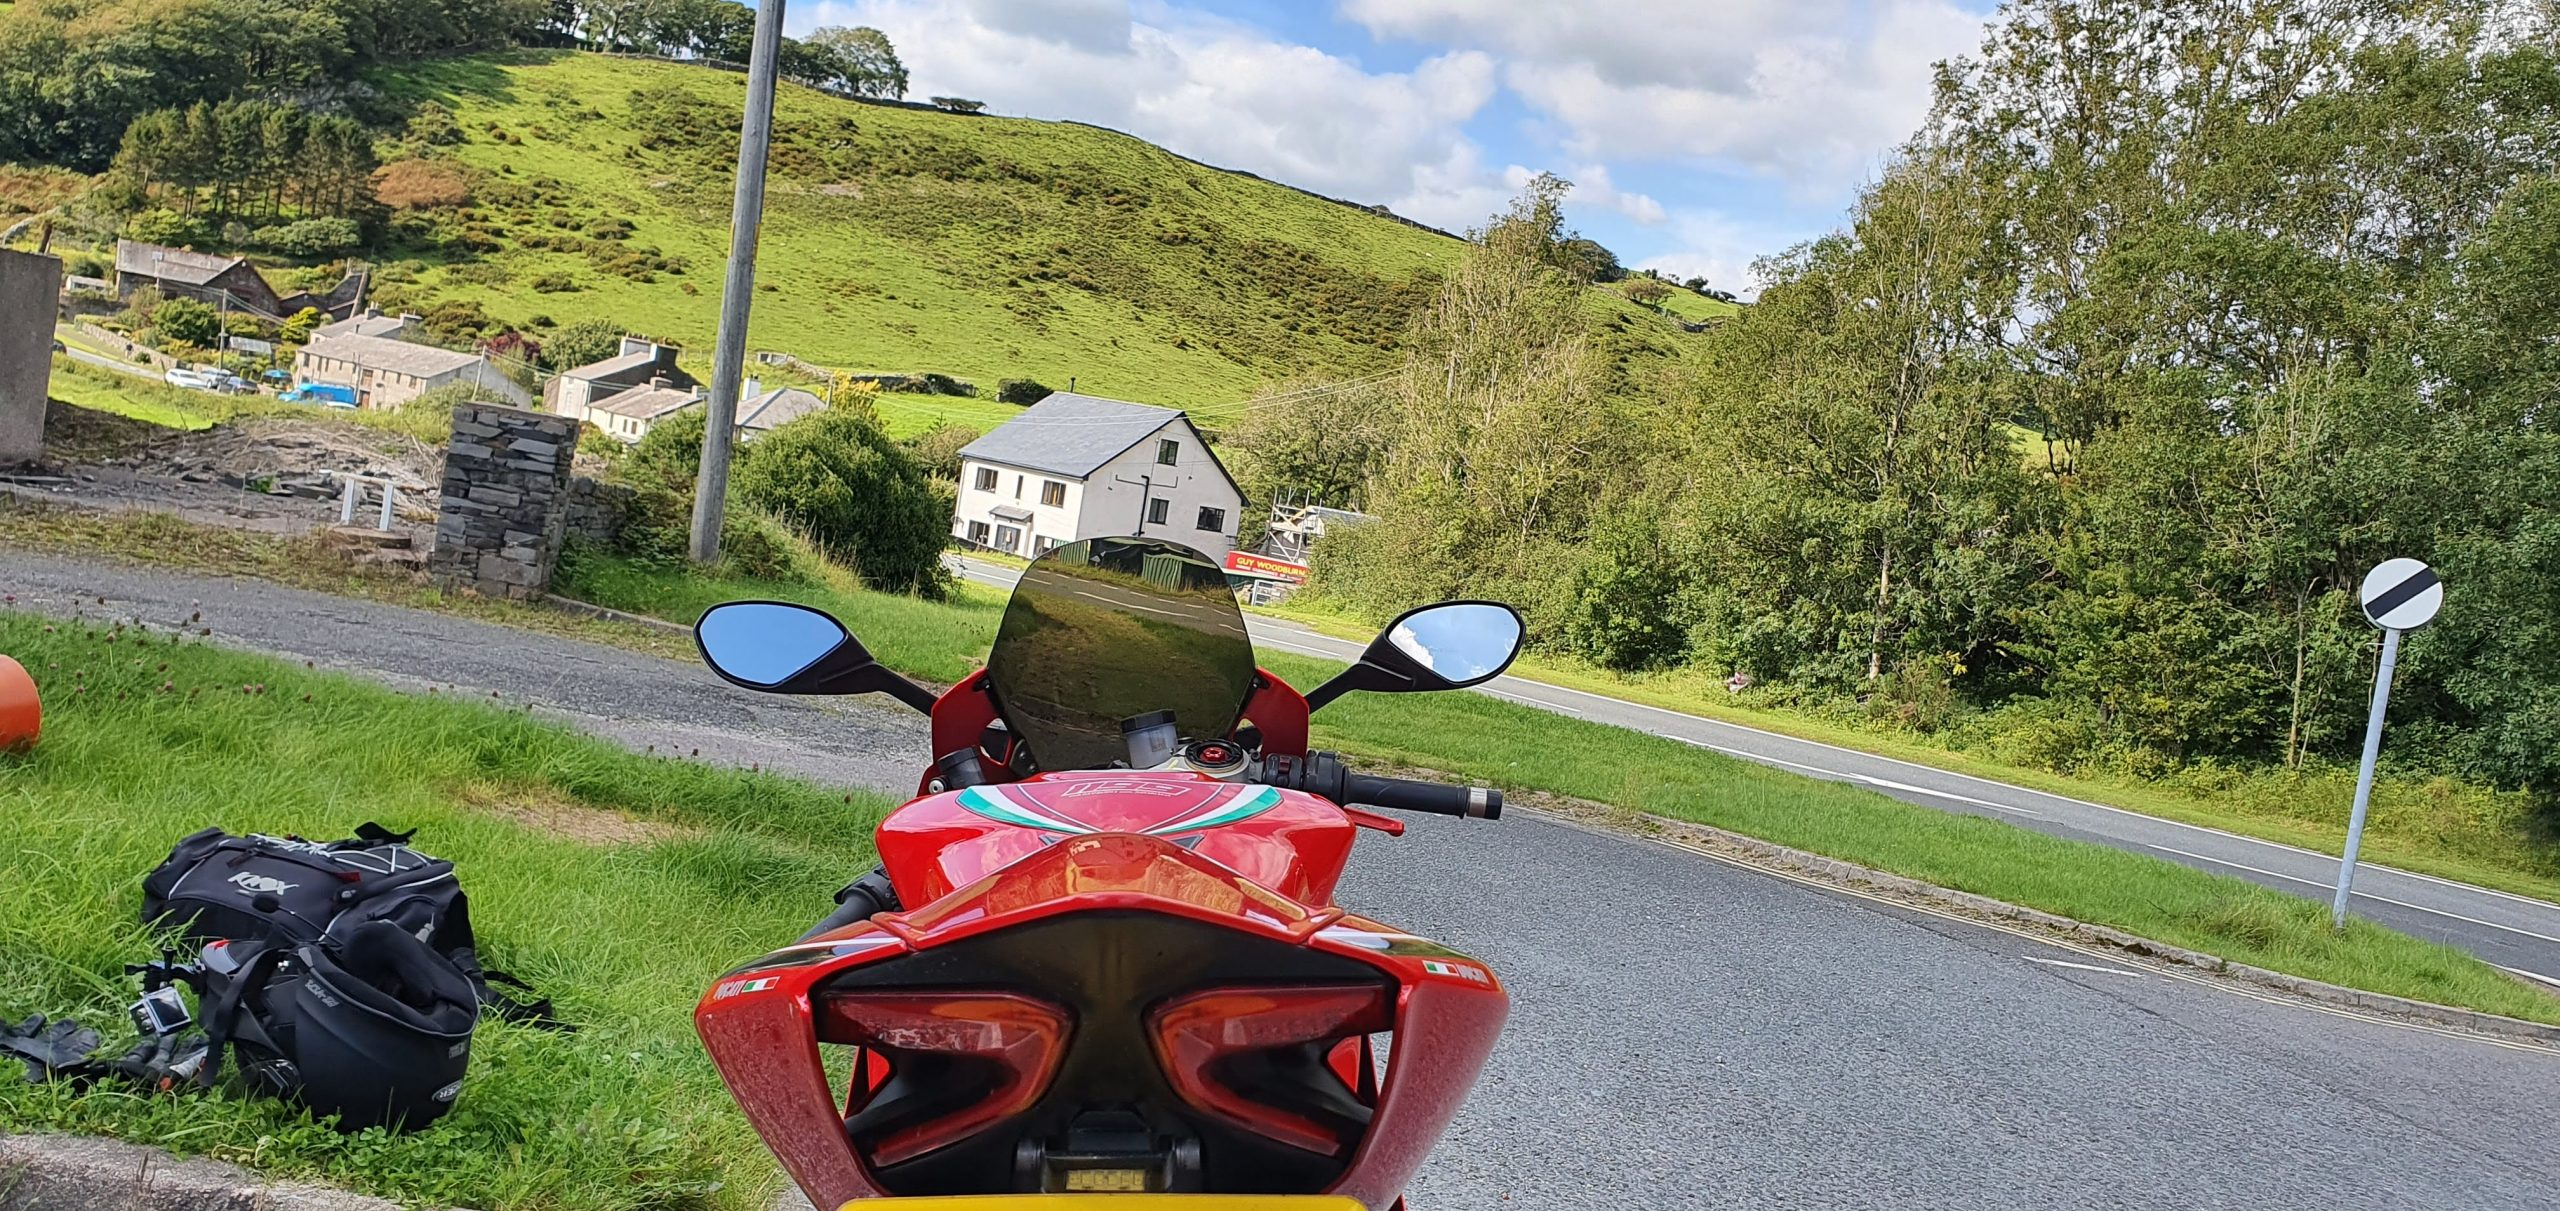 Ducati 1199 Panigale Review stop